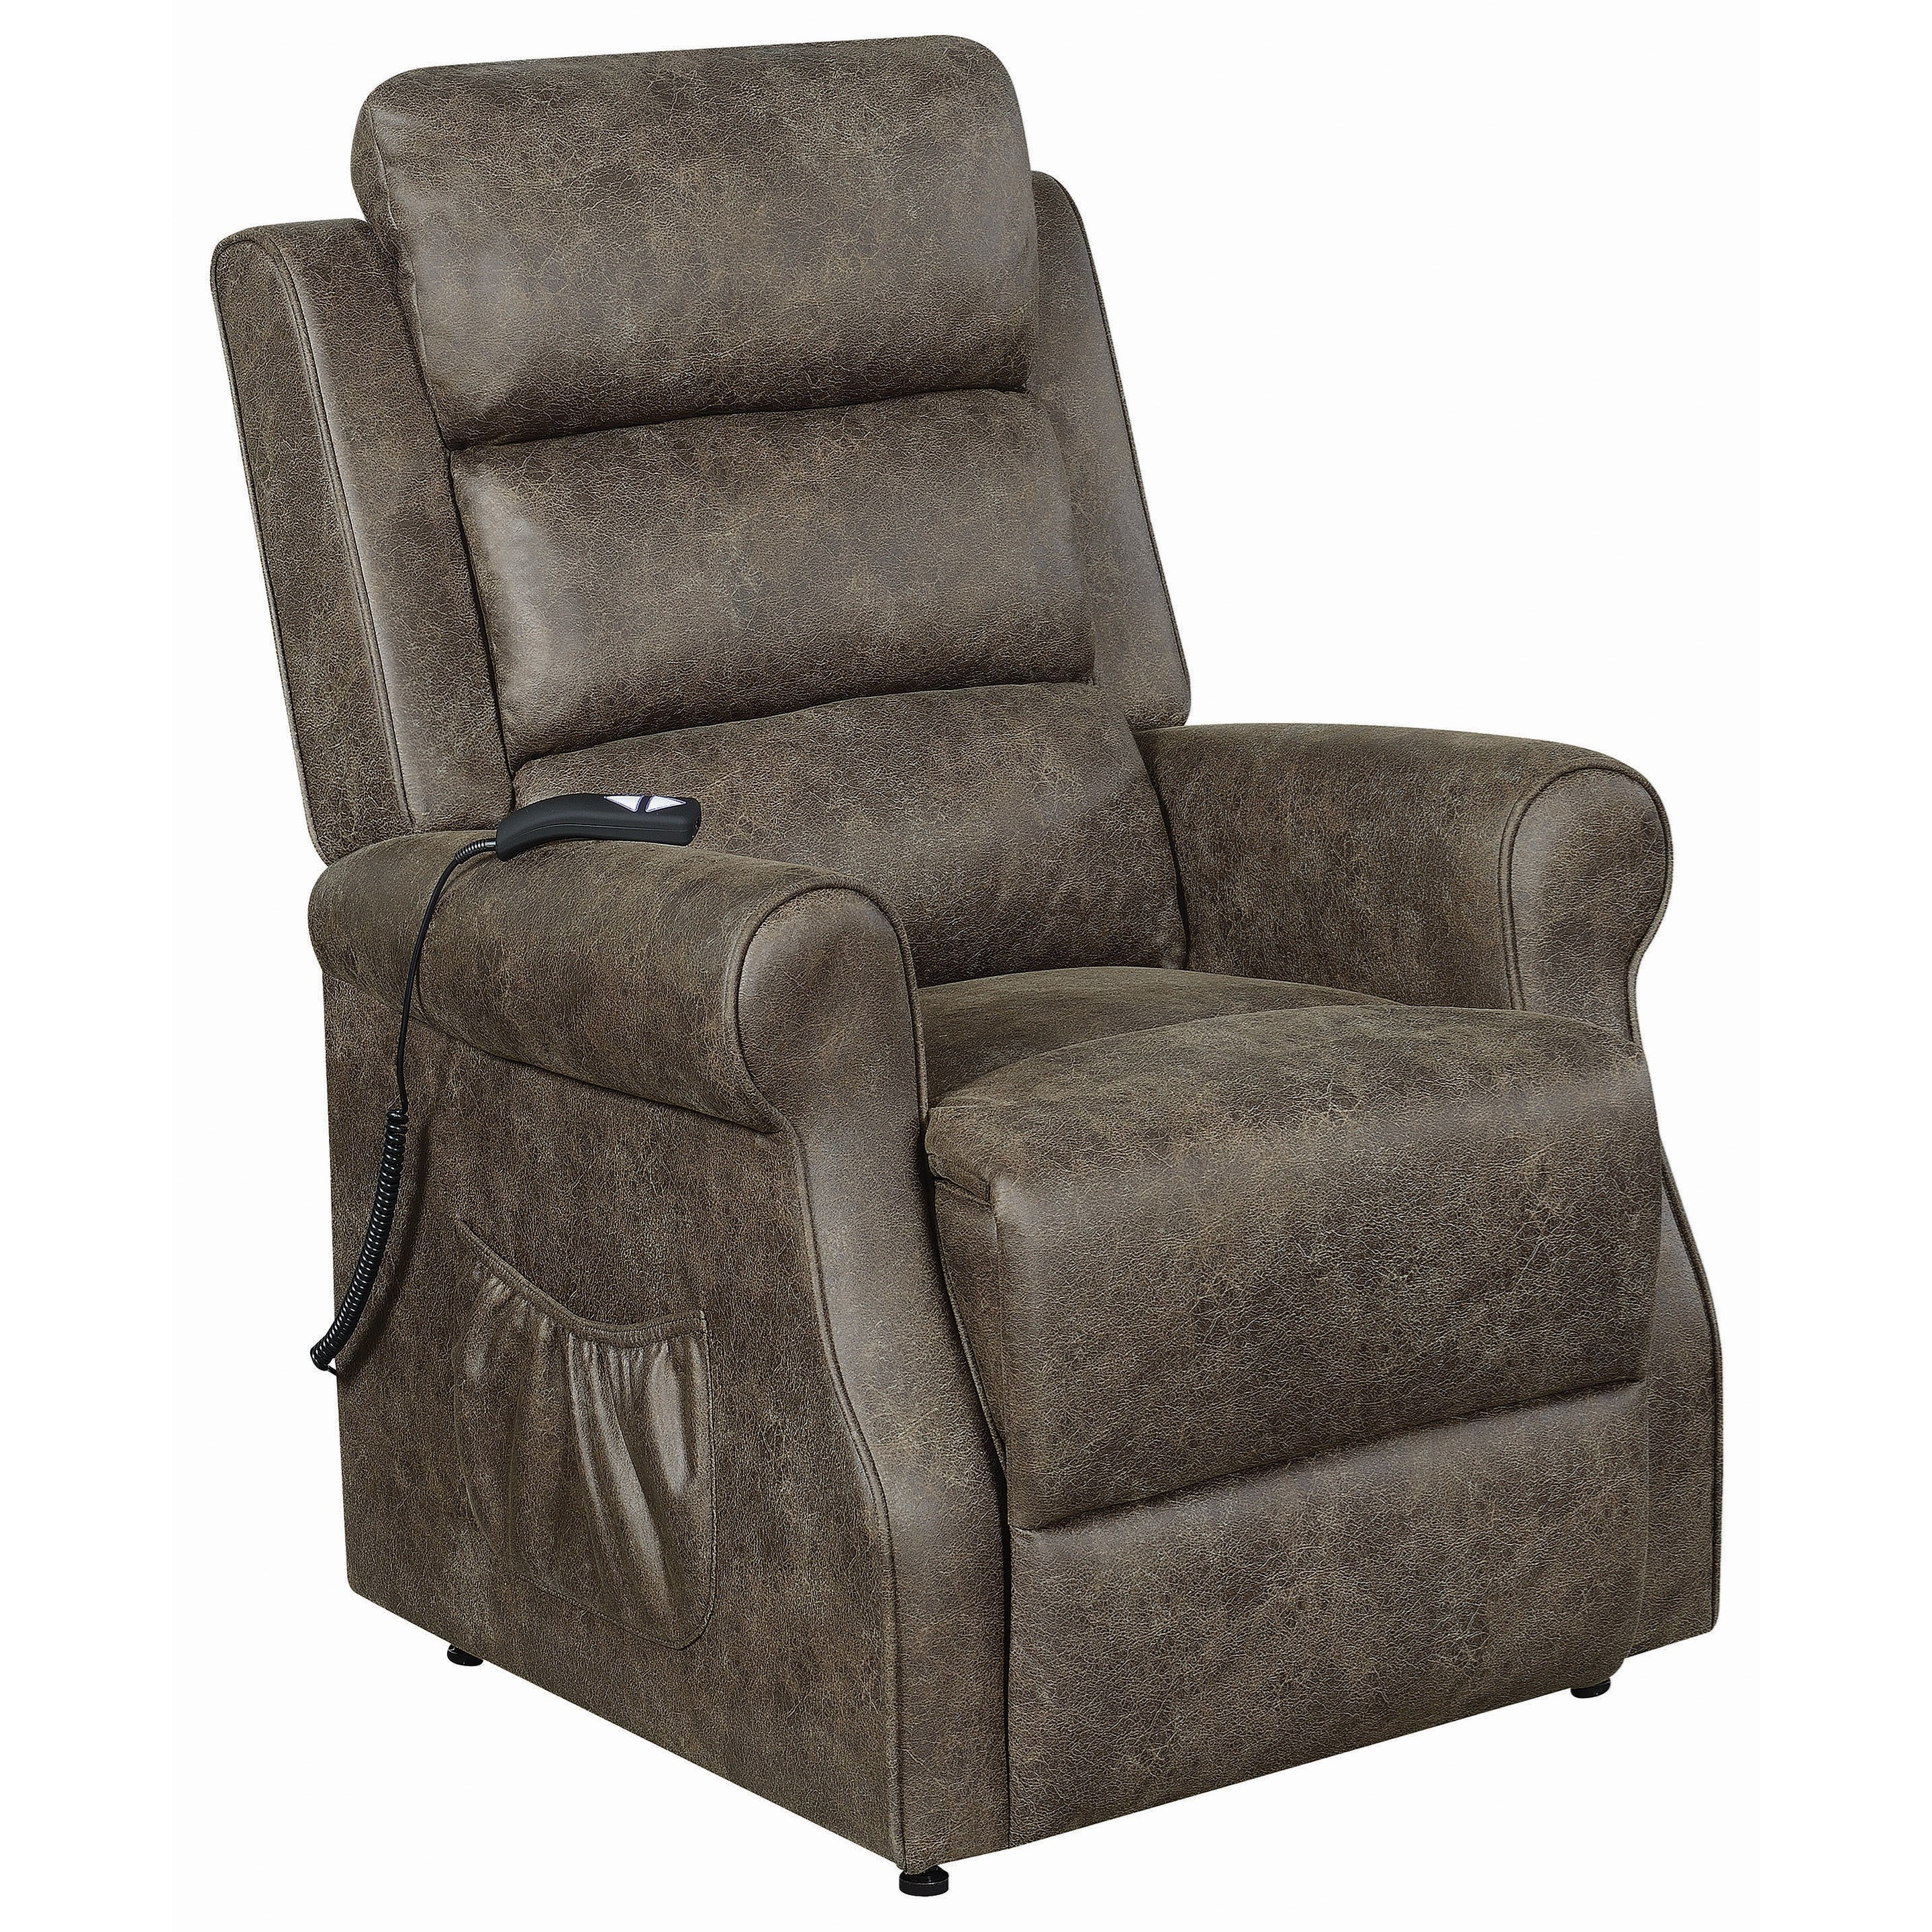 Power Lift Recliner - Small